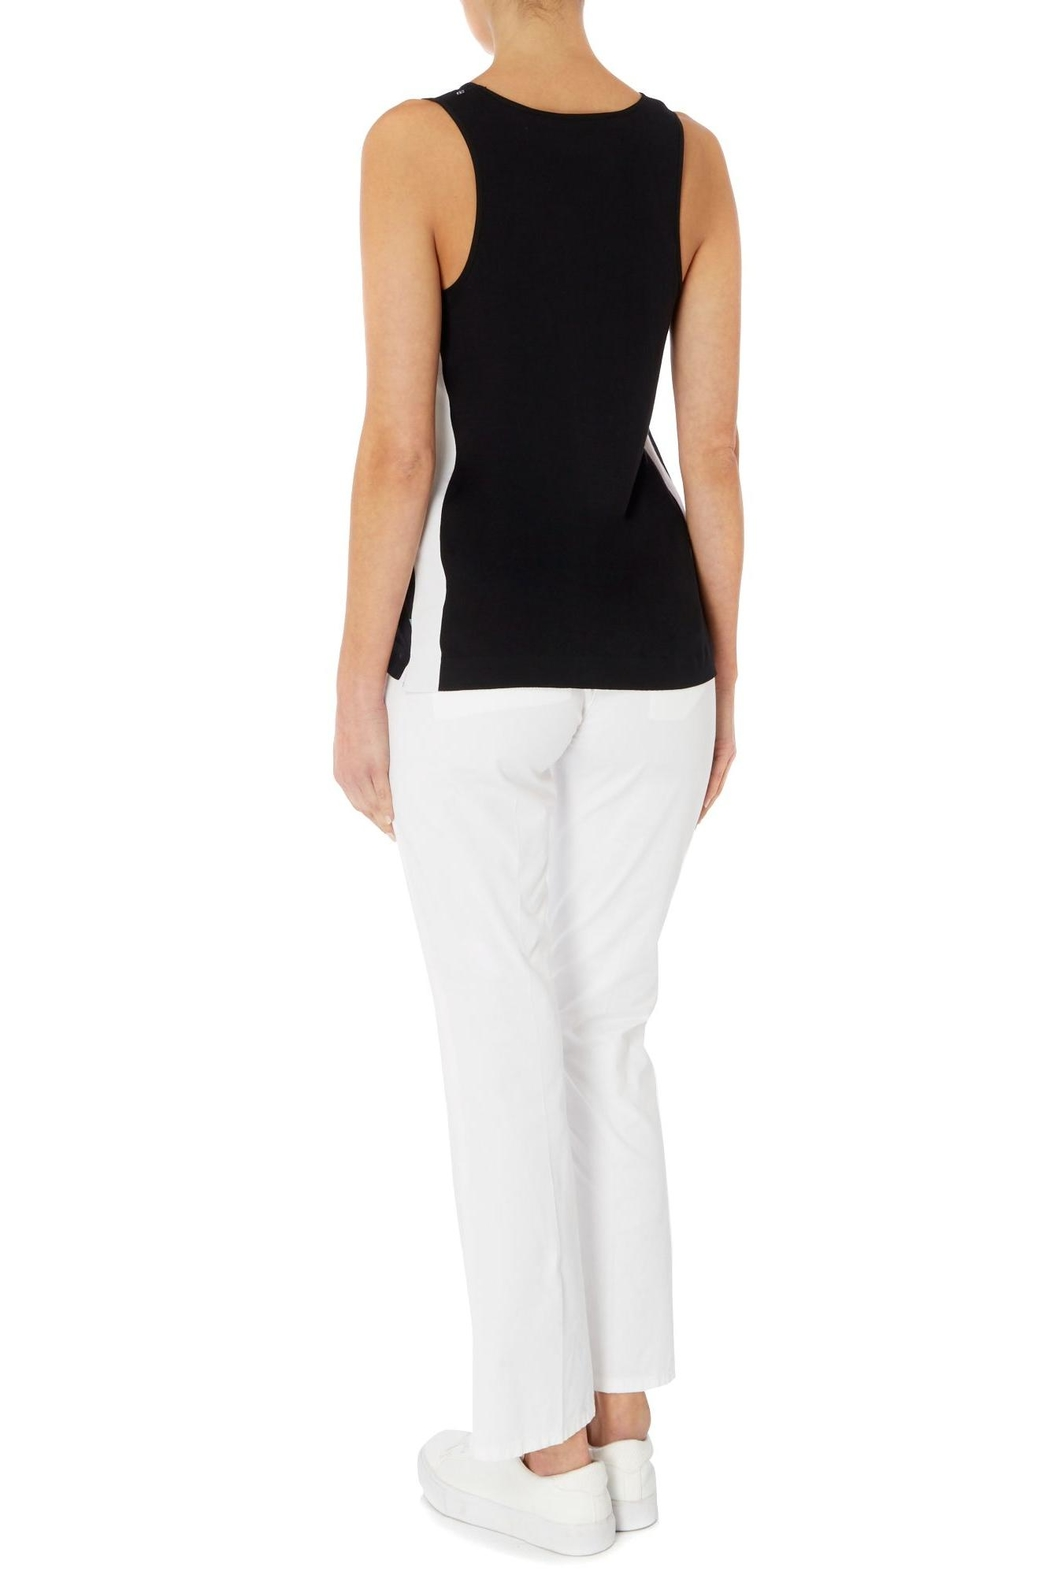 Sportmax White Cotton Trousers - Front Full Image